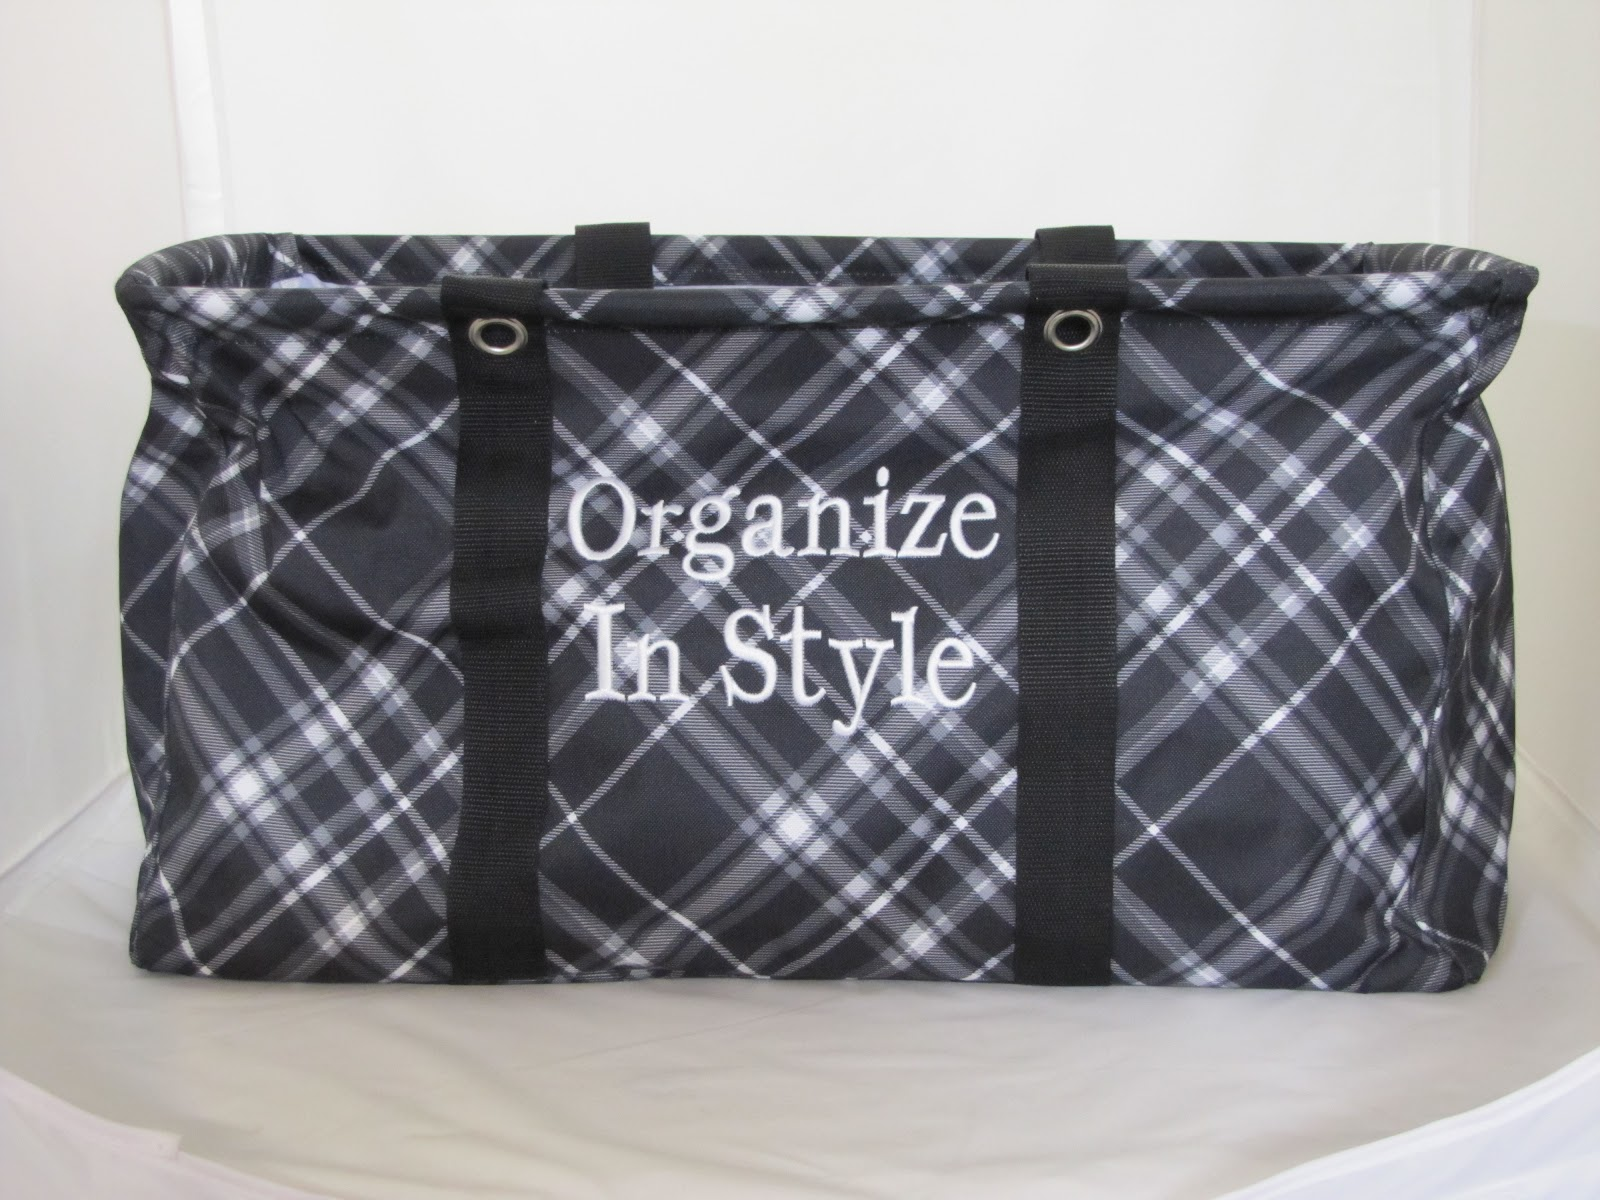 Organizing Shoulder Bag Black Pick Me Plaid 89